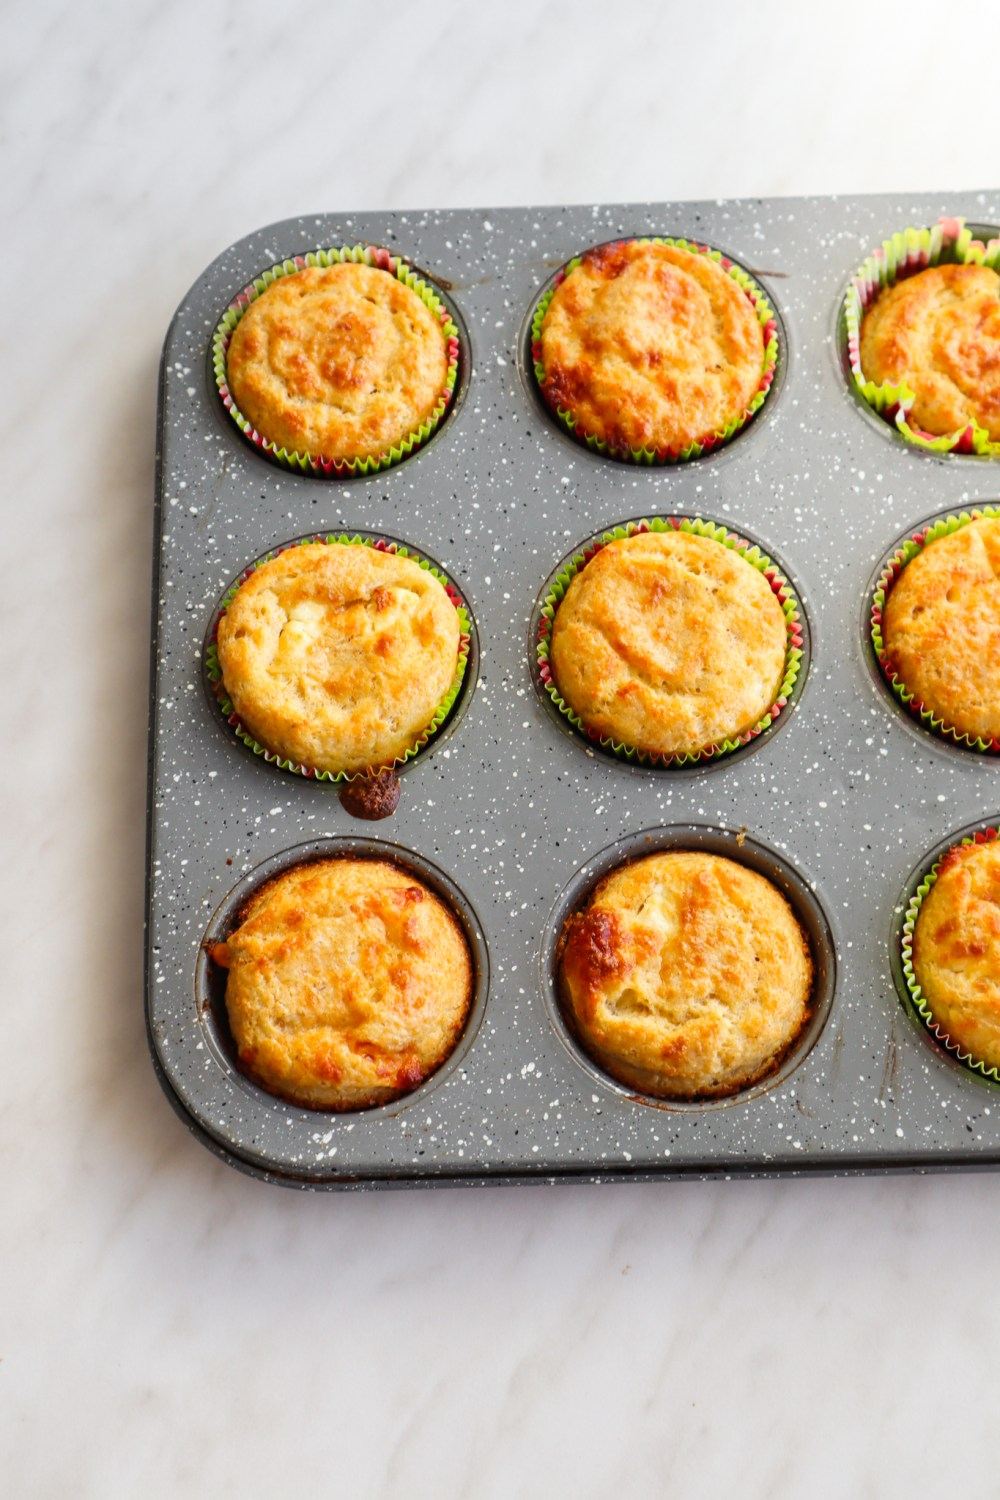 Flourless savoury oatmeal feta muffins! This easy savoury breakfast muffin recipe is simple, gluten free and so delicious! If you're looking for some new easy meal prep breakfast ideas, you've got to try these feta muffins!